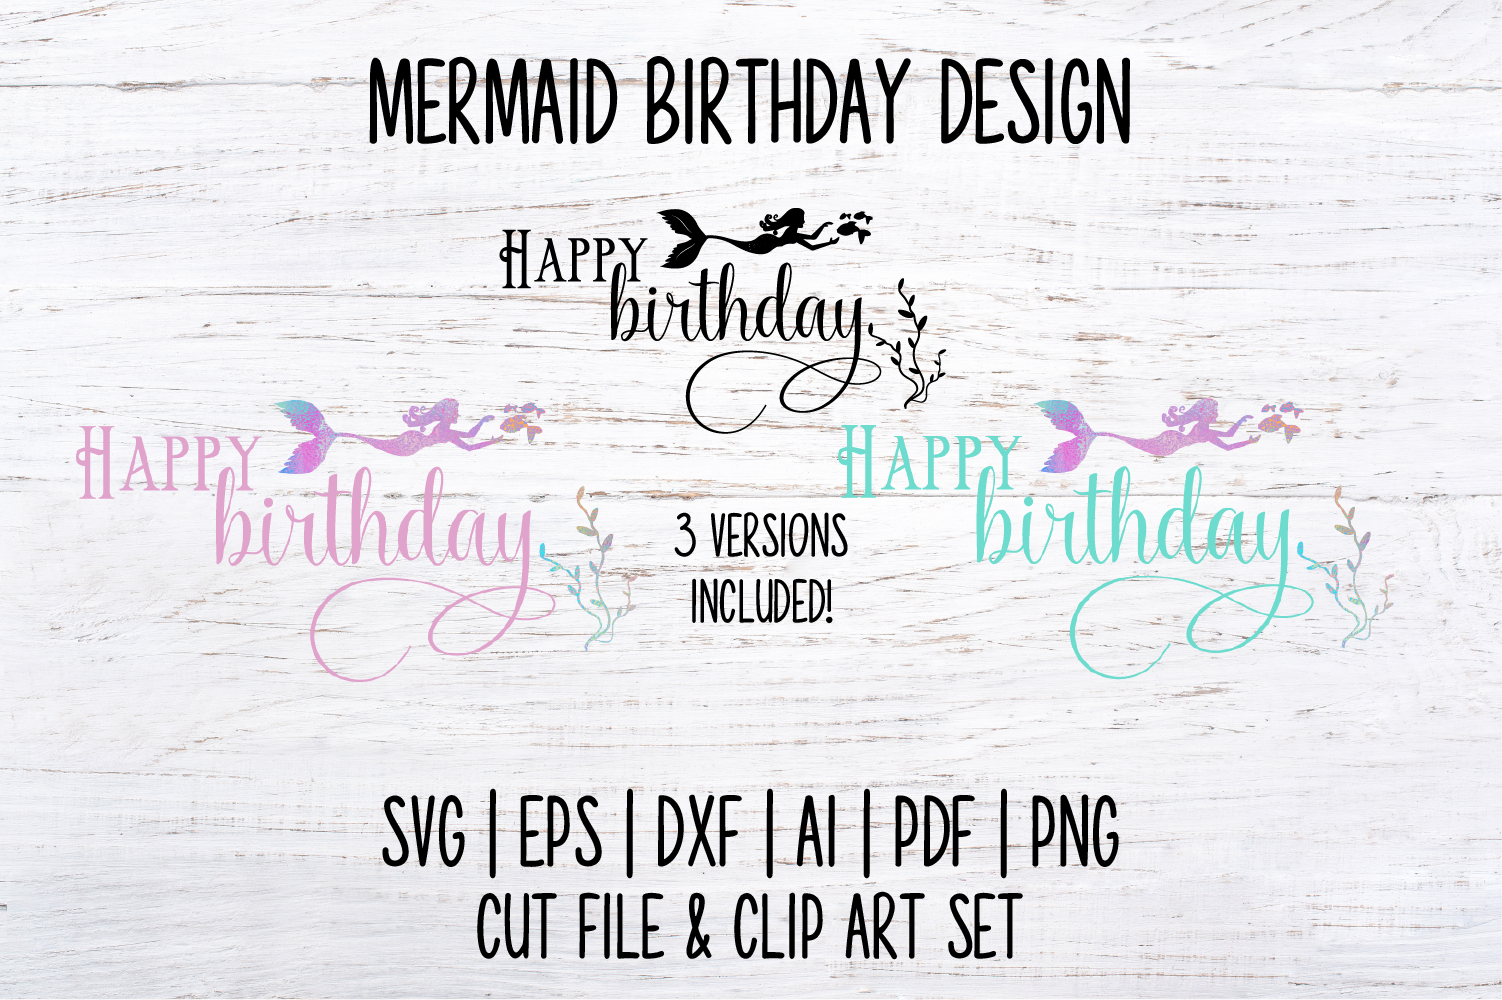 Mermaid Happy Birthday SVG Cut File and PNG Clip Art Set example image 3